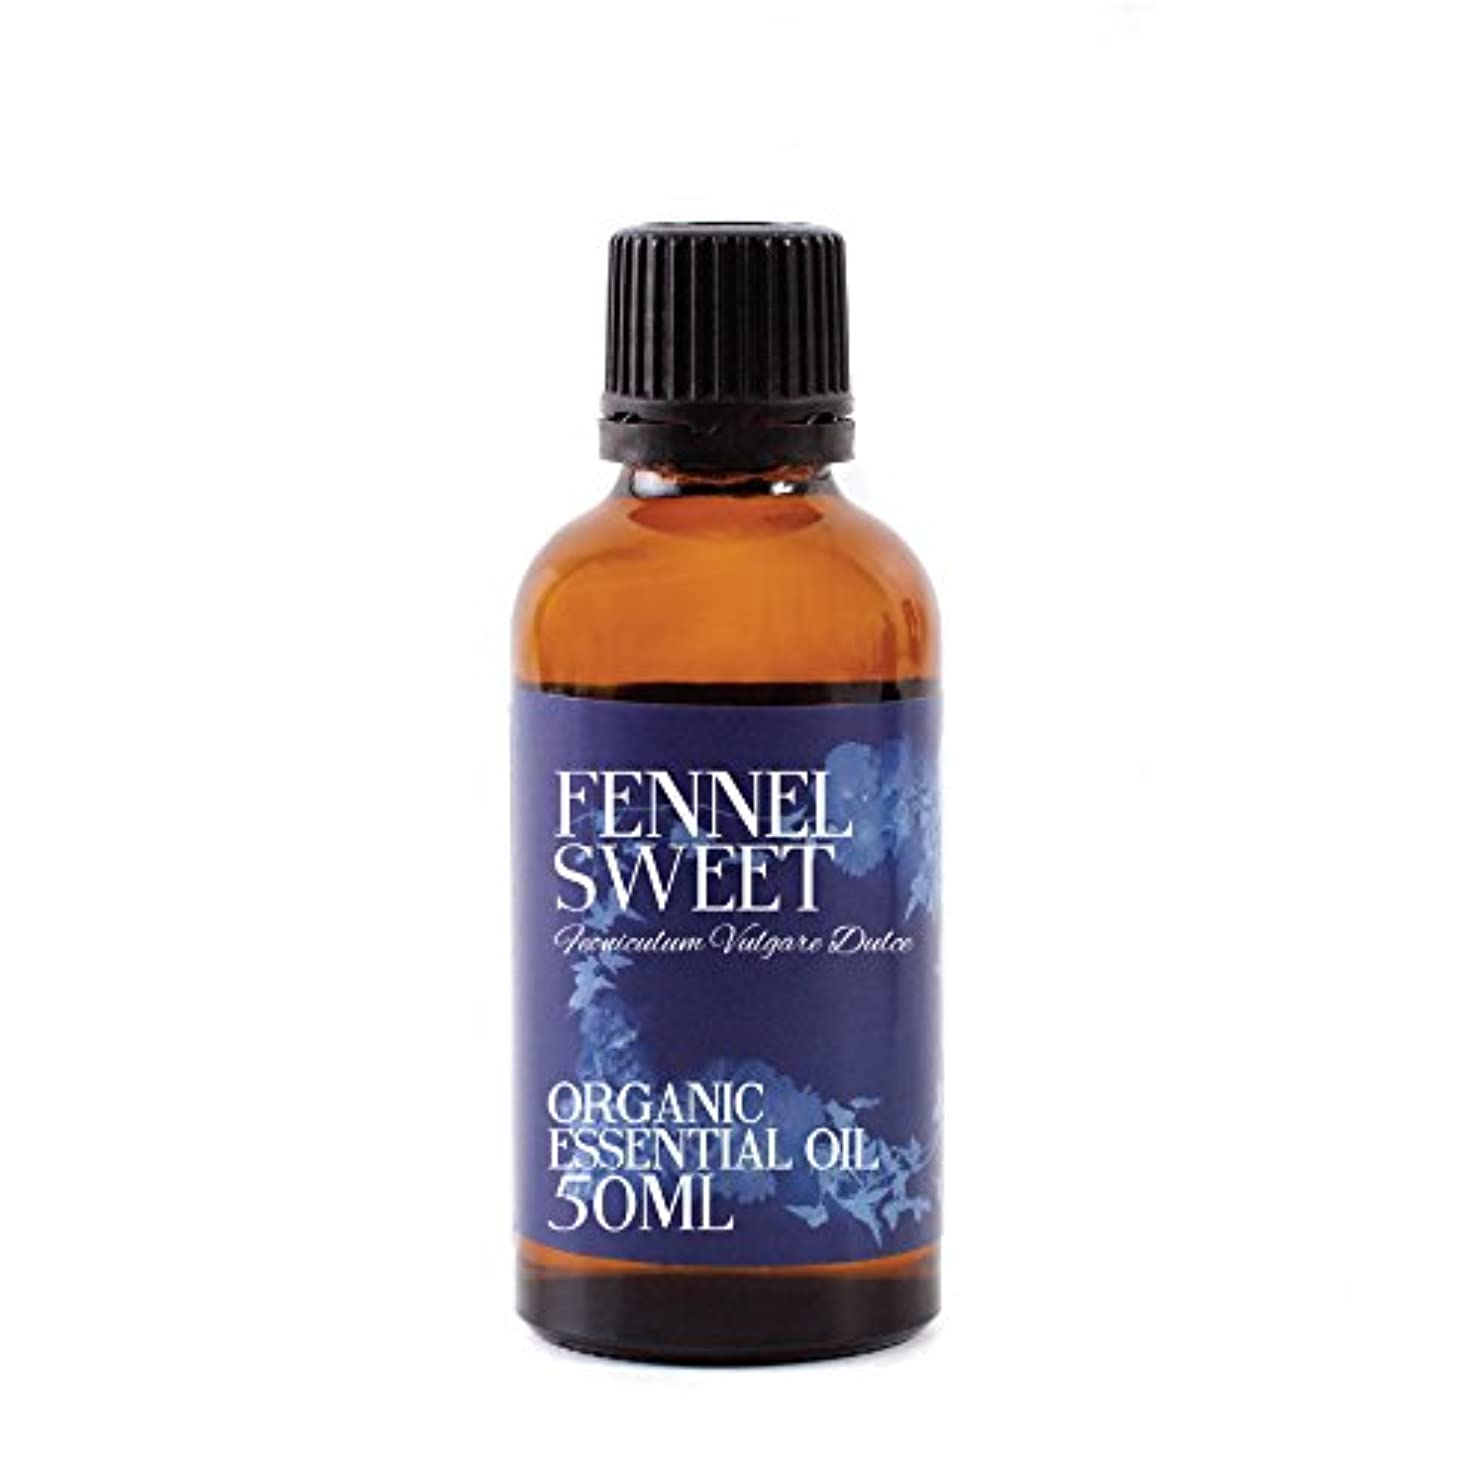 果てしない賛辞職人Mystic Moments | Fennel Sweet Organic Essential Oil - 50ml - 100% Pure